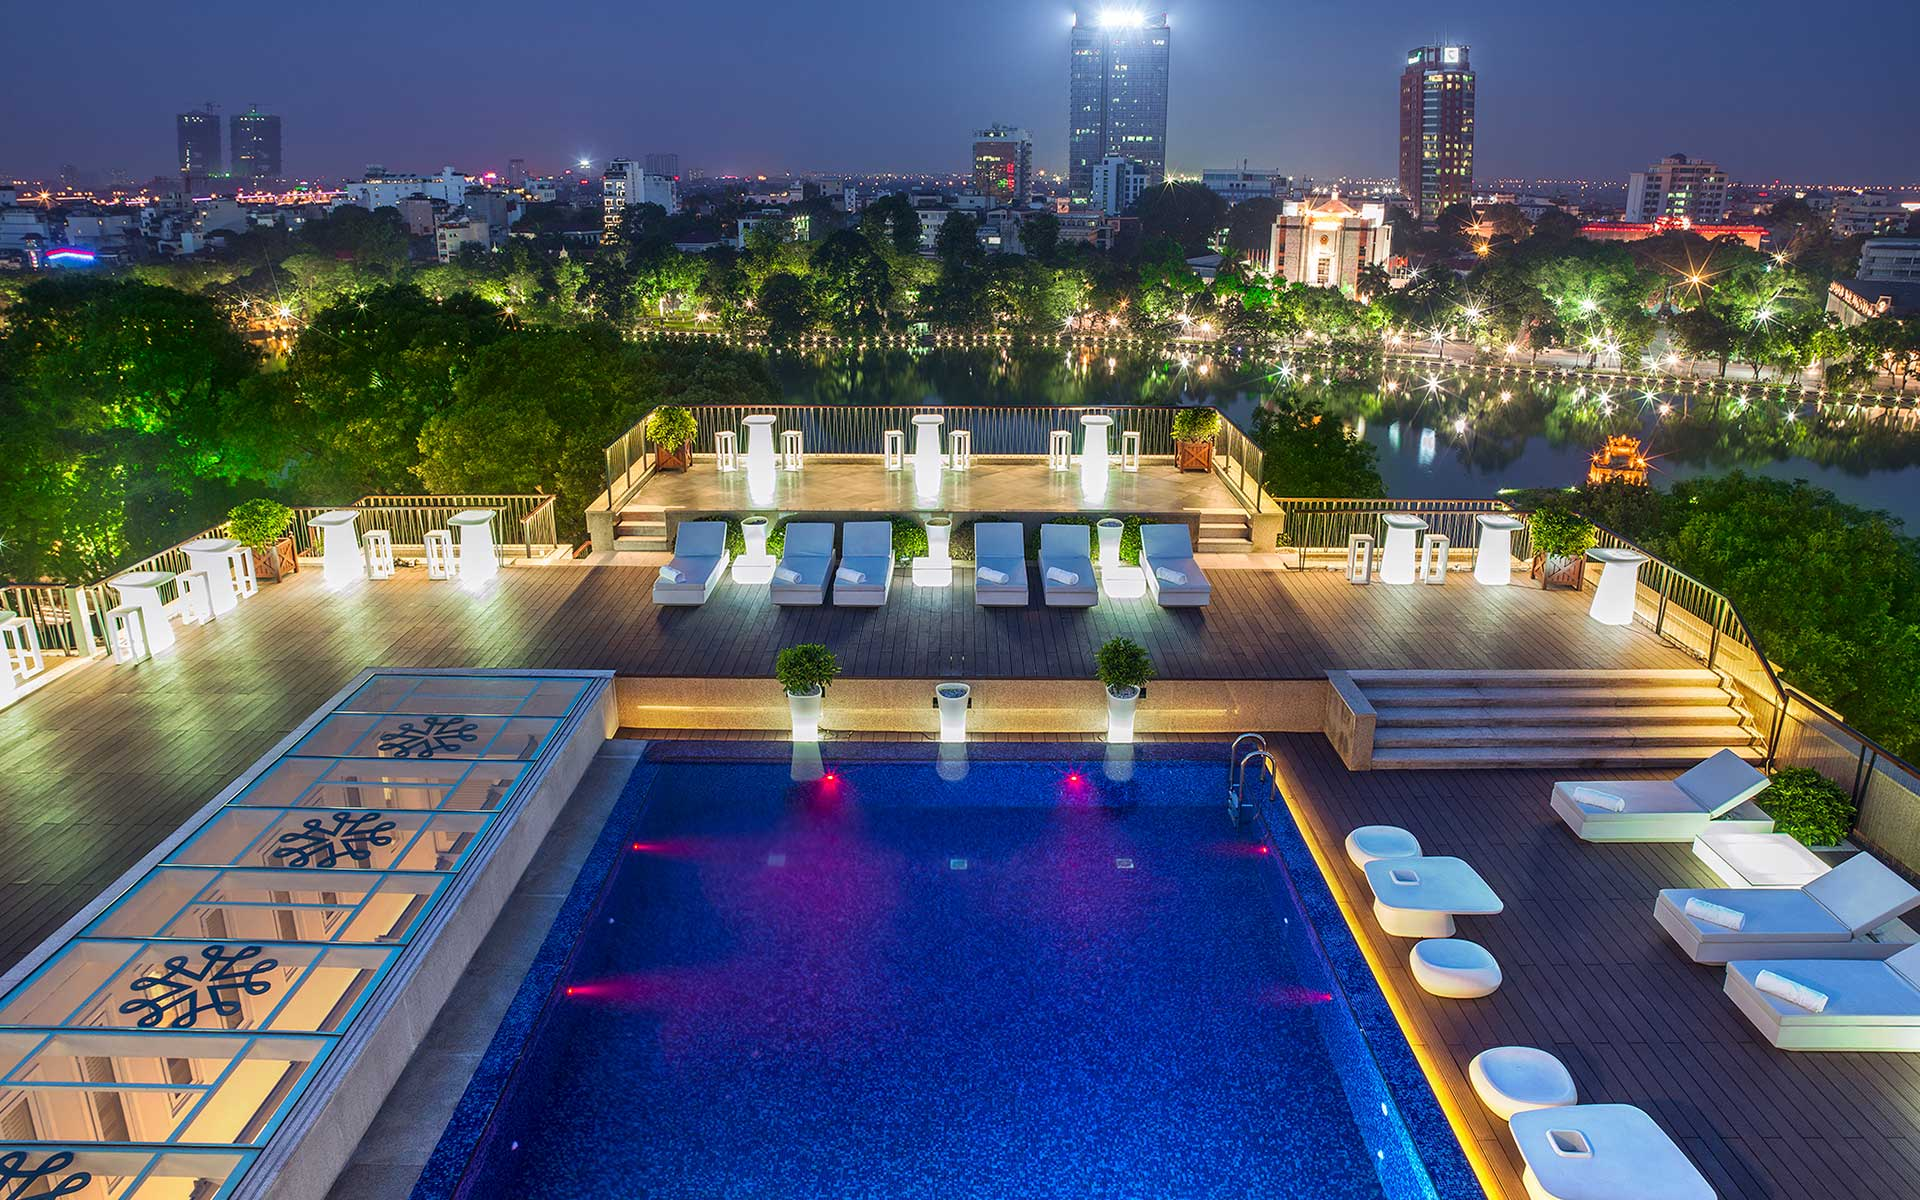 Outdoor swimming pool of Apricot Hotel